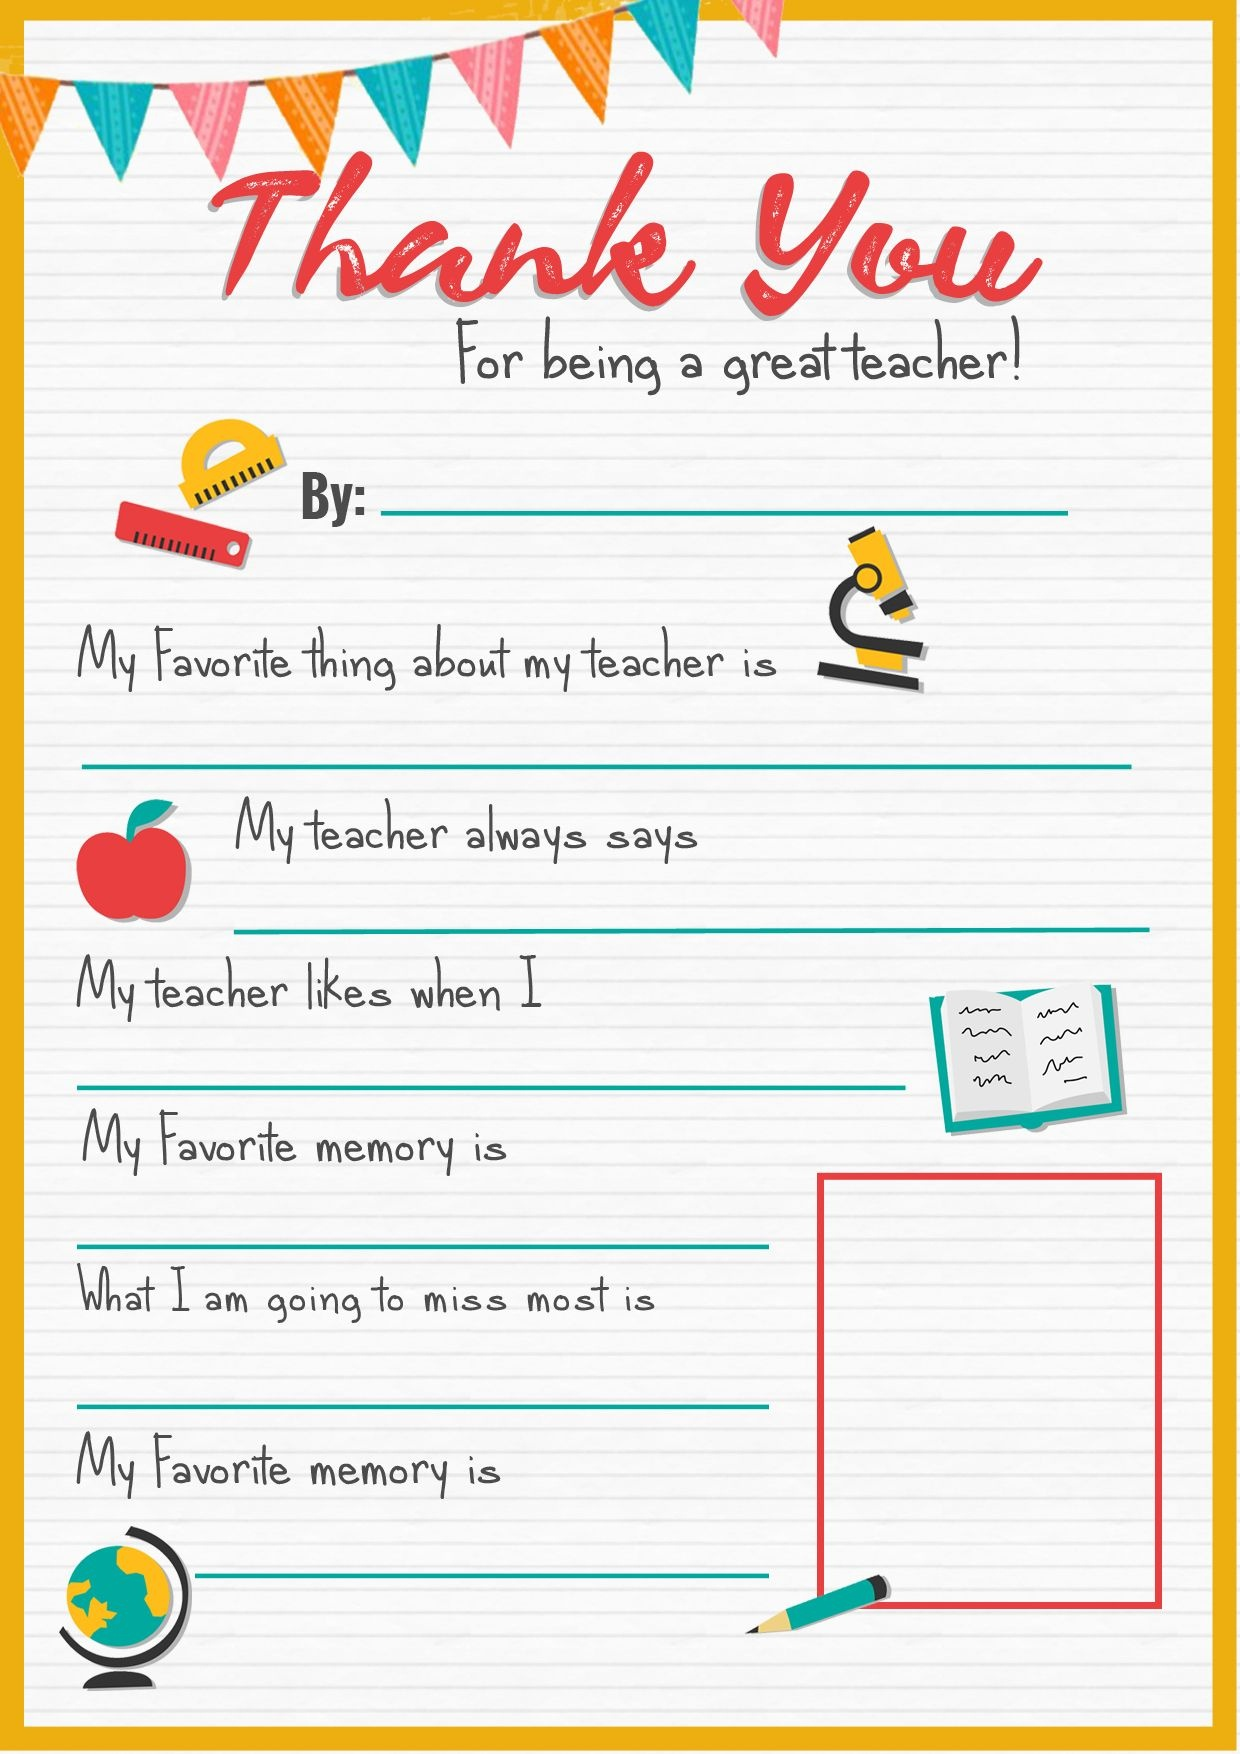 Thank You Teacher - A Free Printable | Stay At Home Mum | Back To - Free Printable Teacher Appreciation Cards